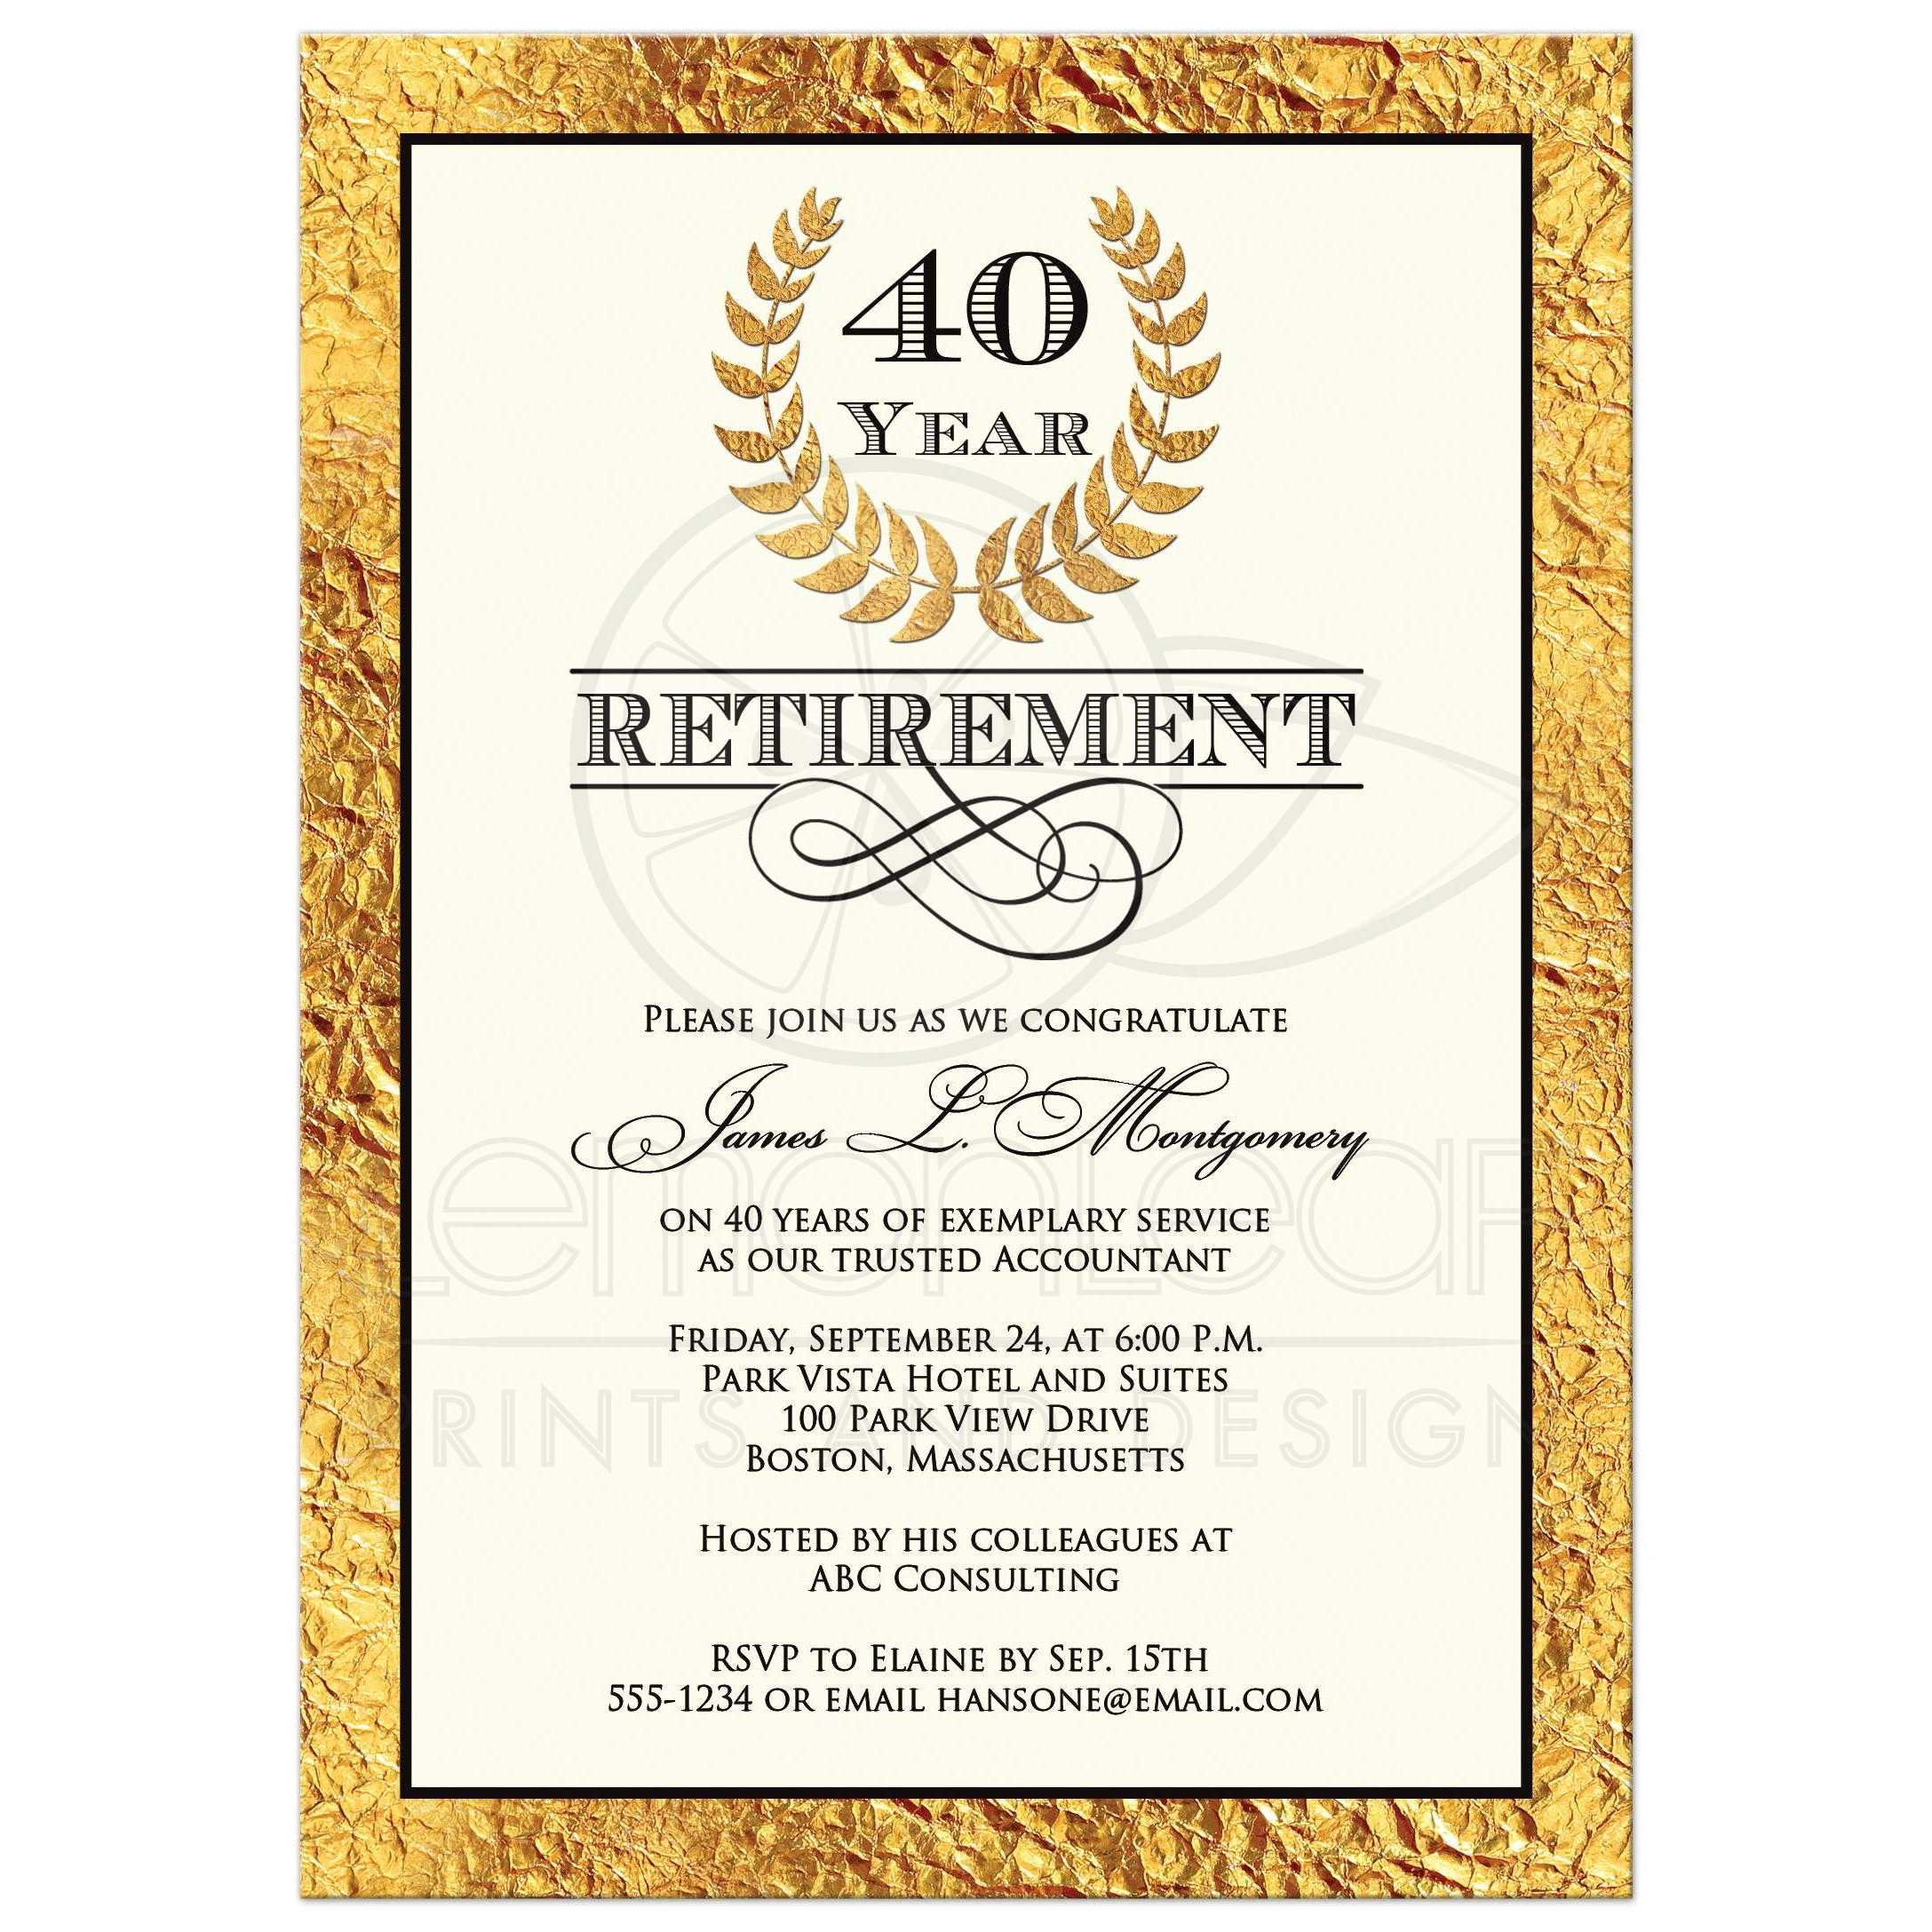 Marvelous 40 Year Retirement Invitation With Gold Laurel Wreath ...